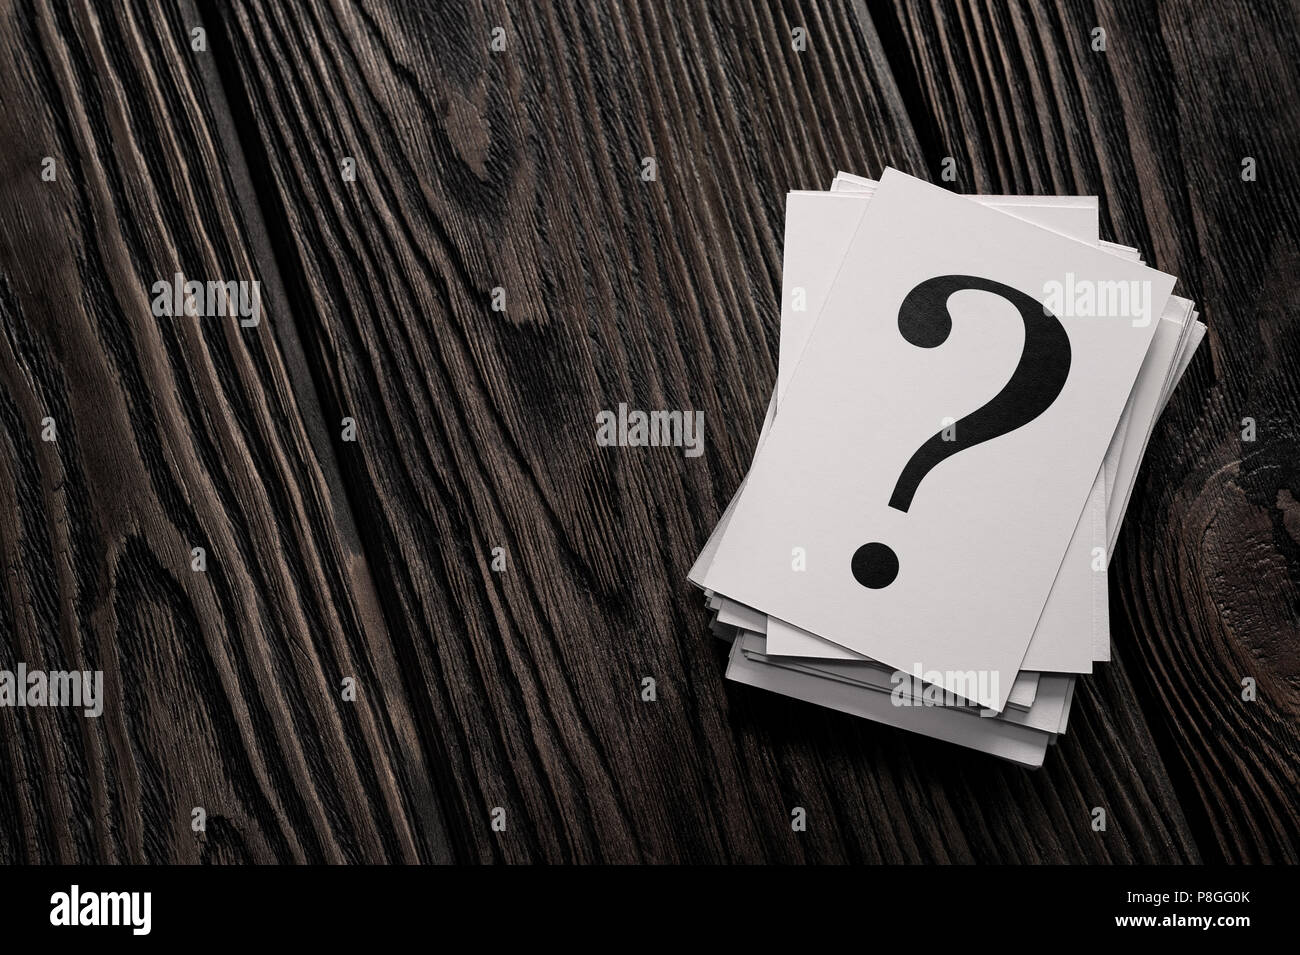 Stack of question mark cards on the wooden table with copy space - Stock Image